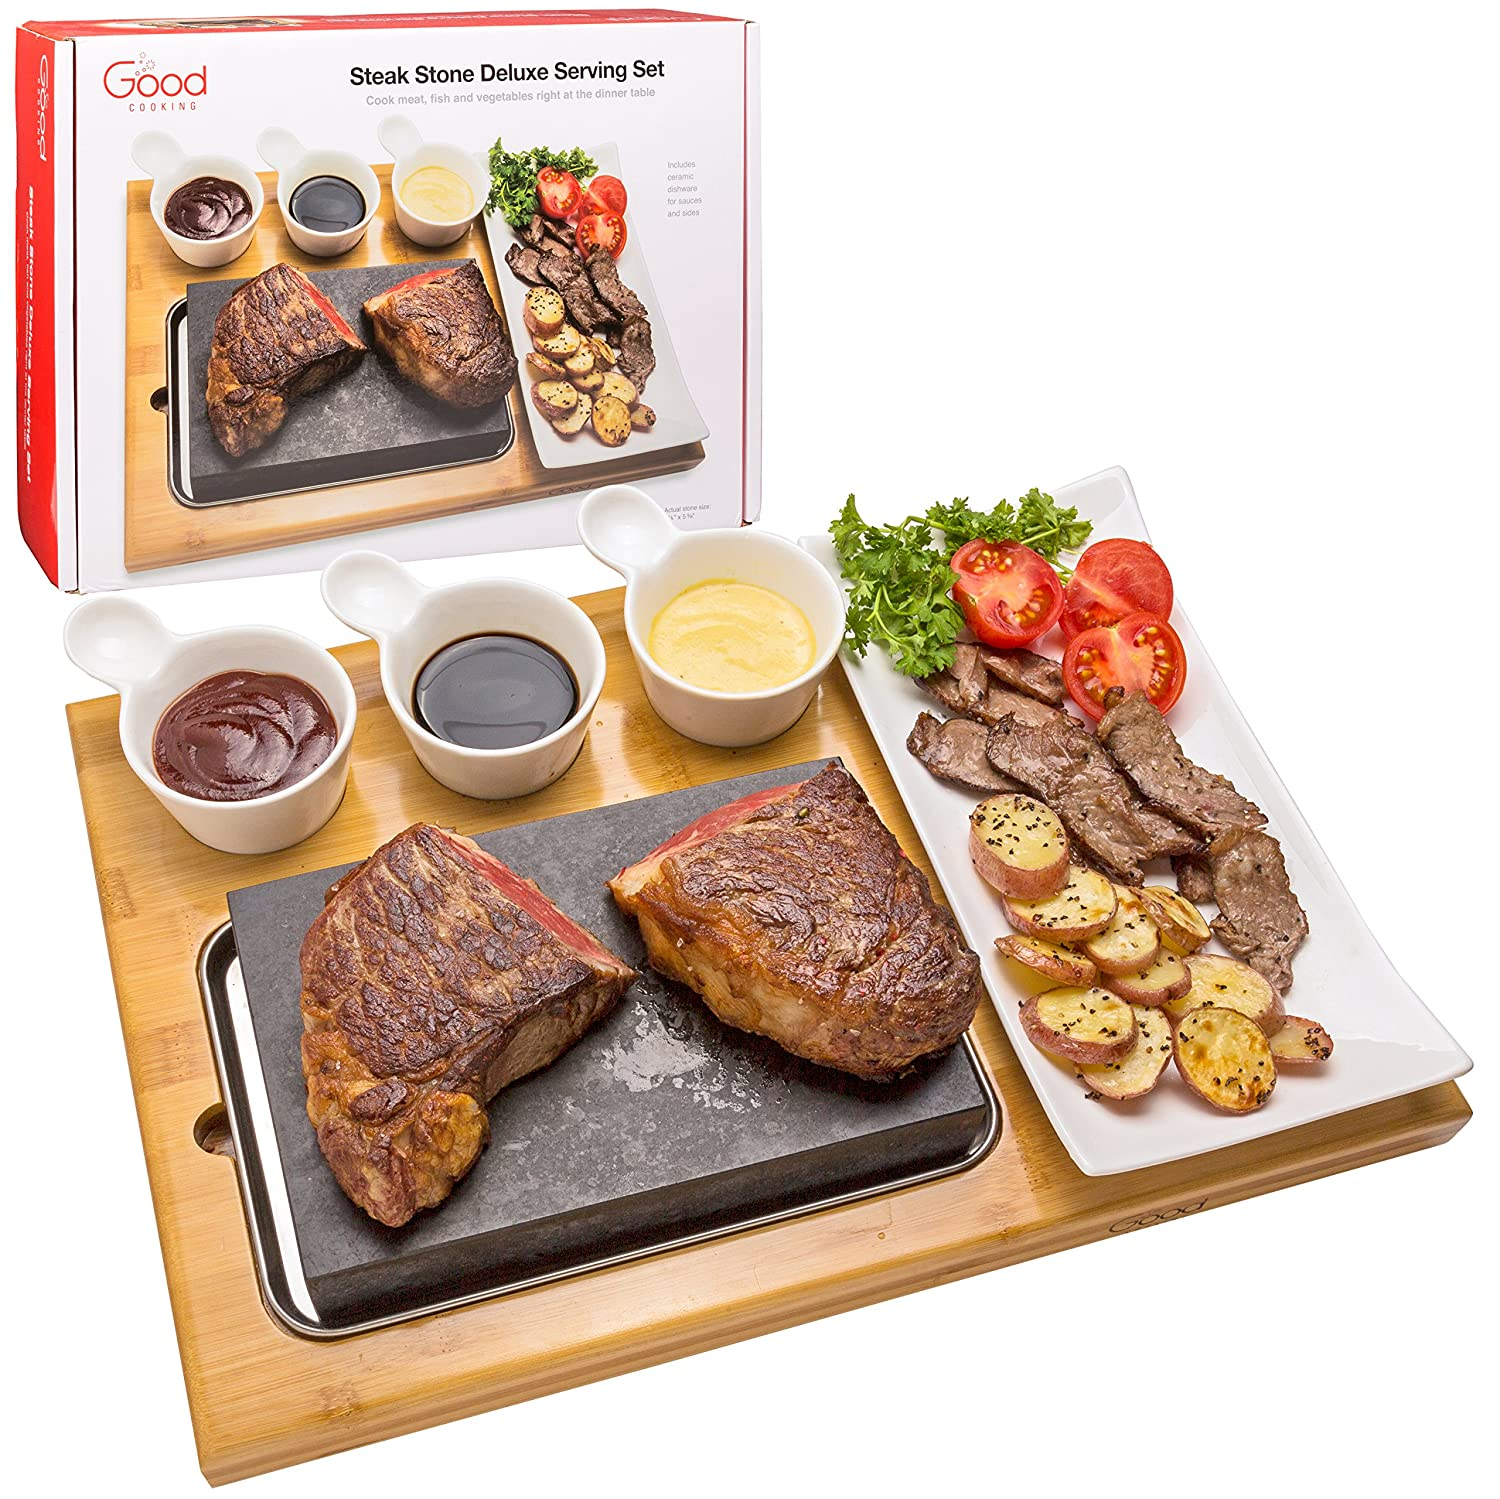 Cooking Stone- Complete Set Lava Hot Steak Stone Plate Tabletop Grill and Cold Lava Rock Hibachi Grilling Stone w Ceramic Side Dishes and Bamboo Platter